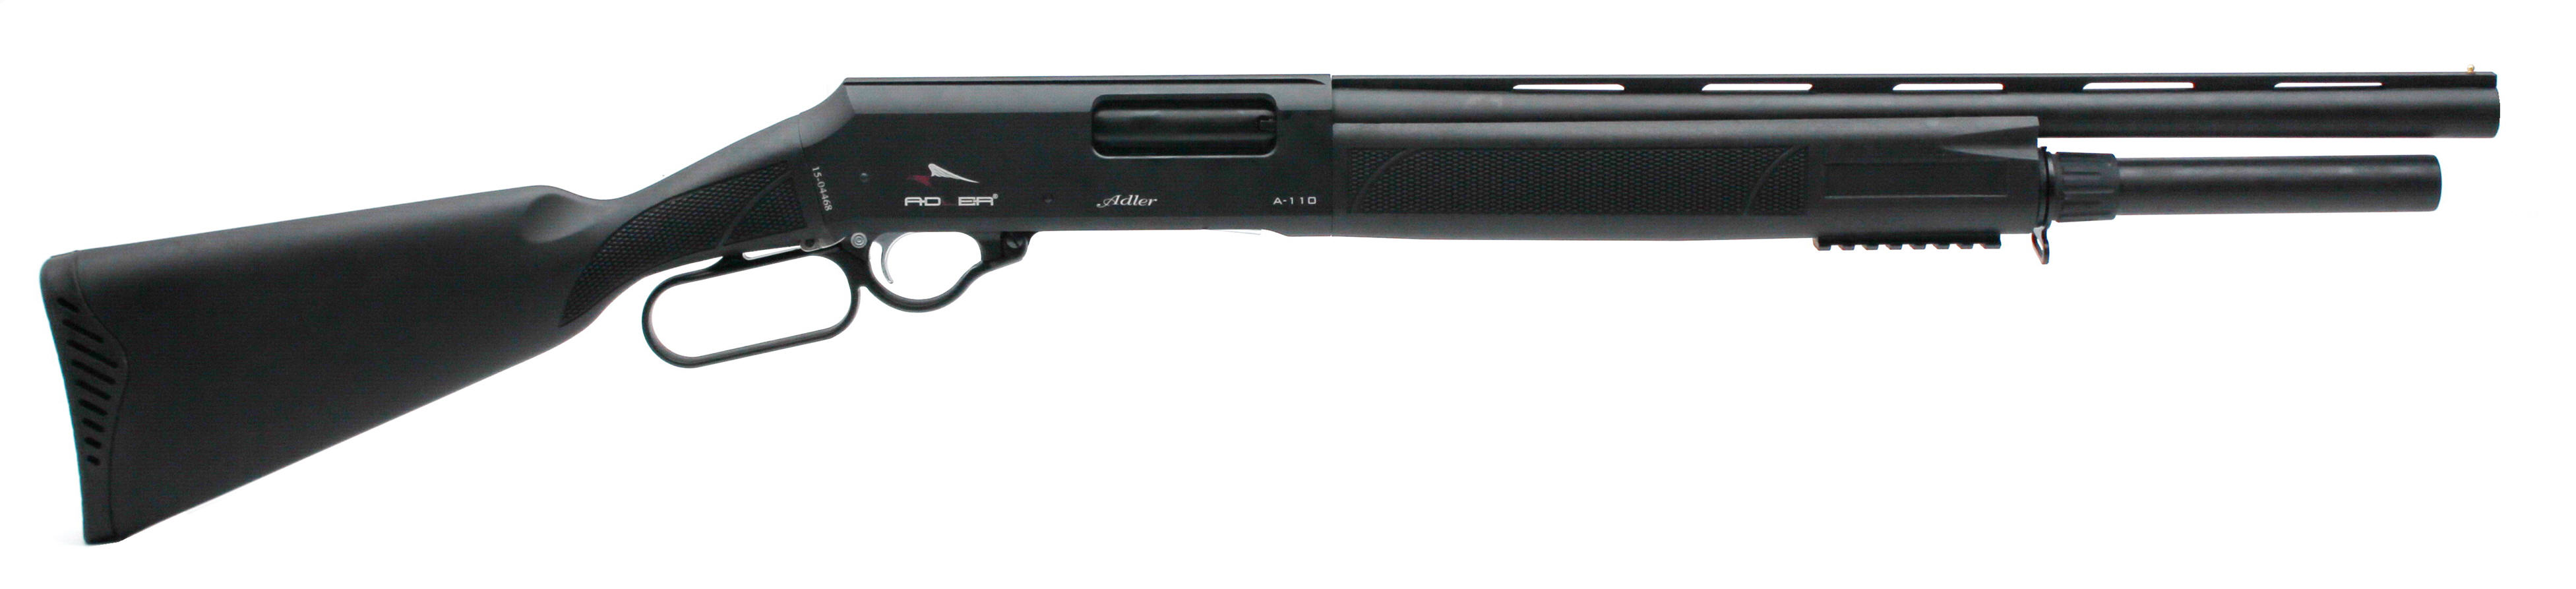 Adler Arms A-110 Lever Action Shotgun